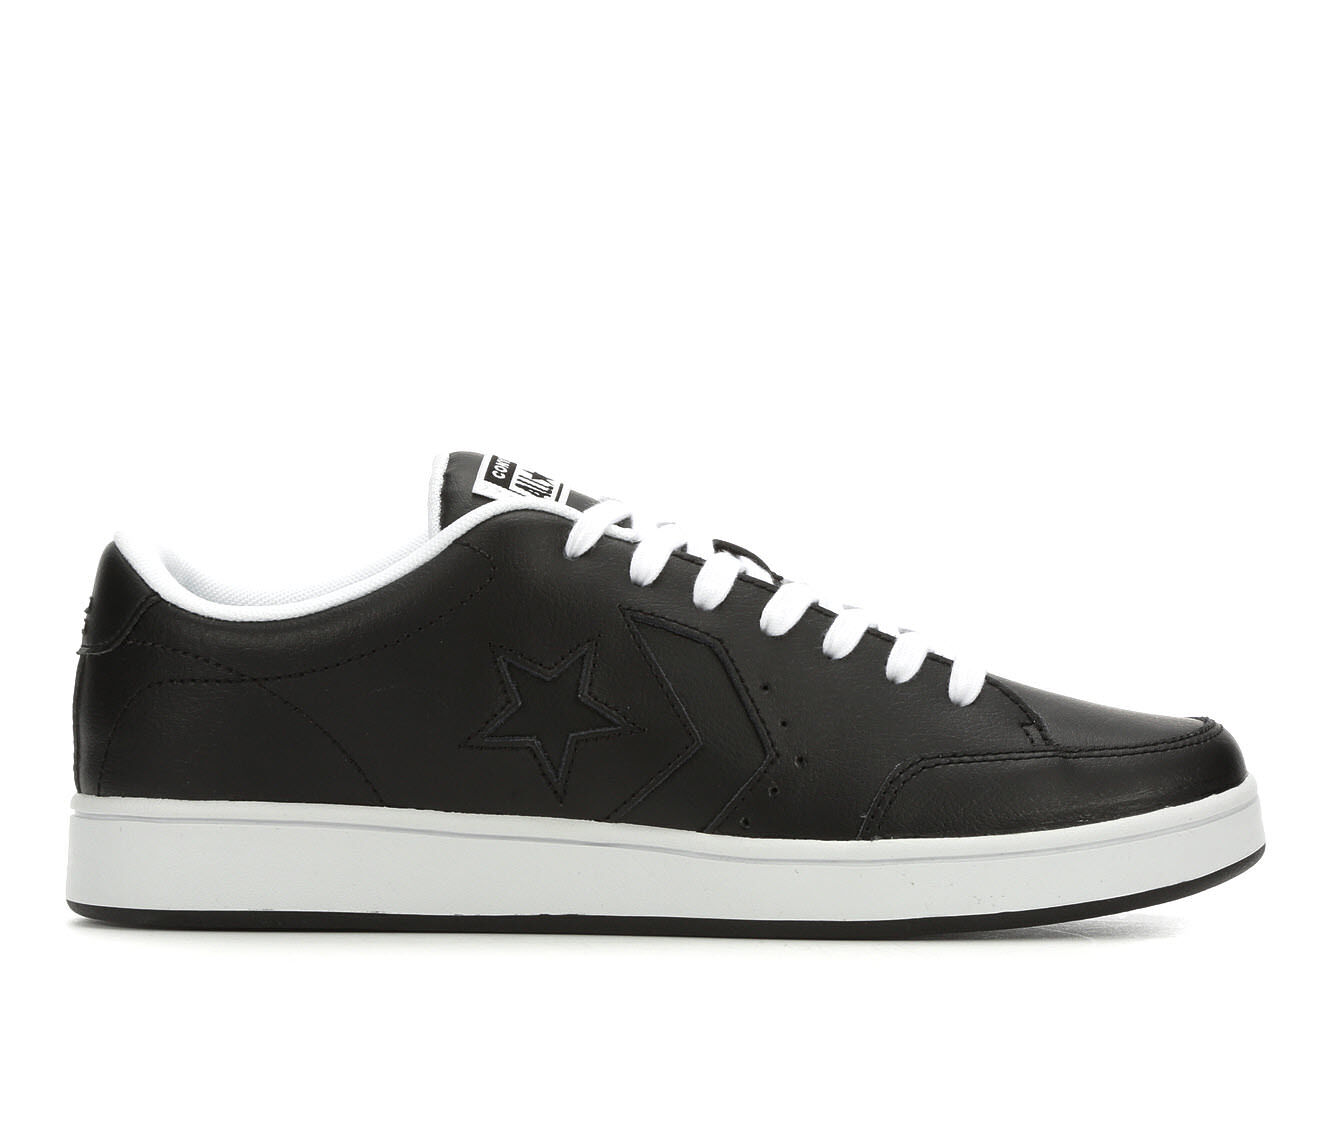 Men's Converse CONS Star Court ... Sneakers